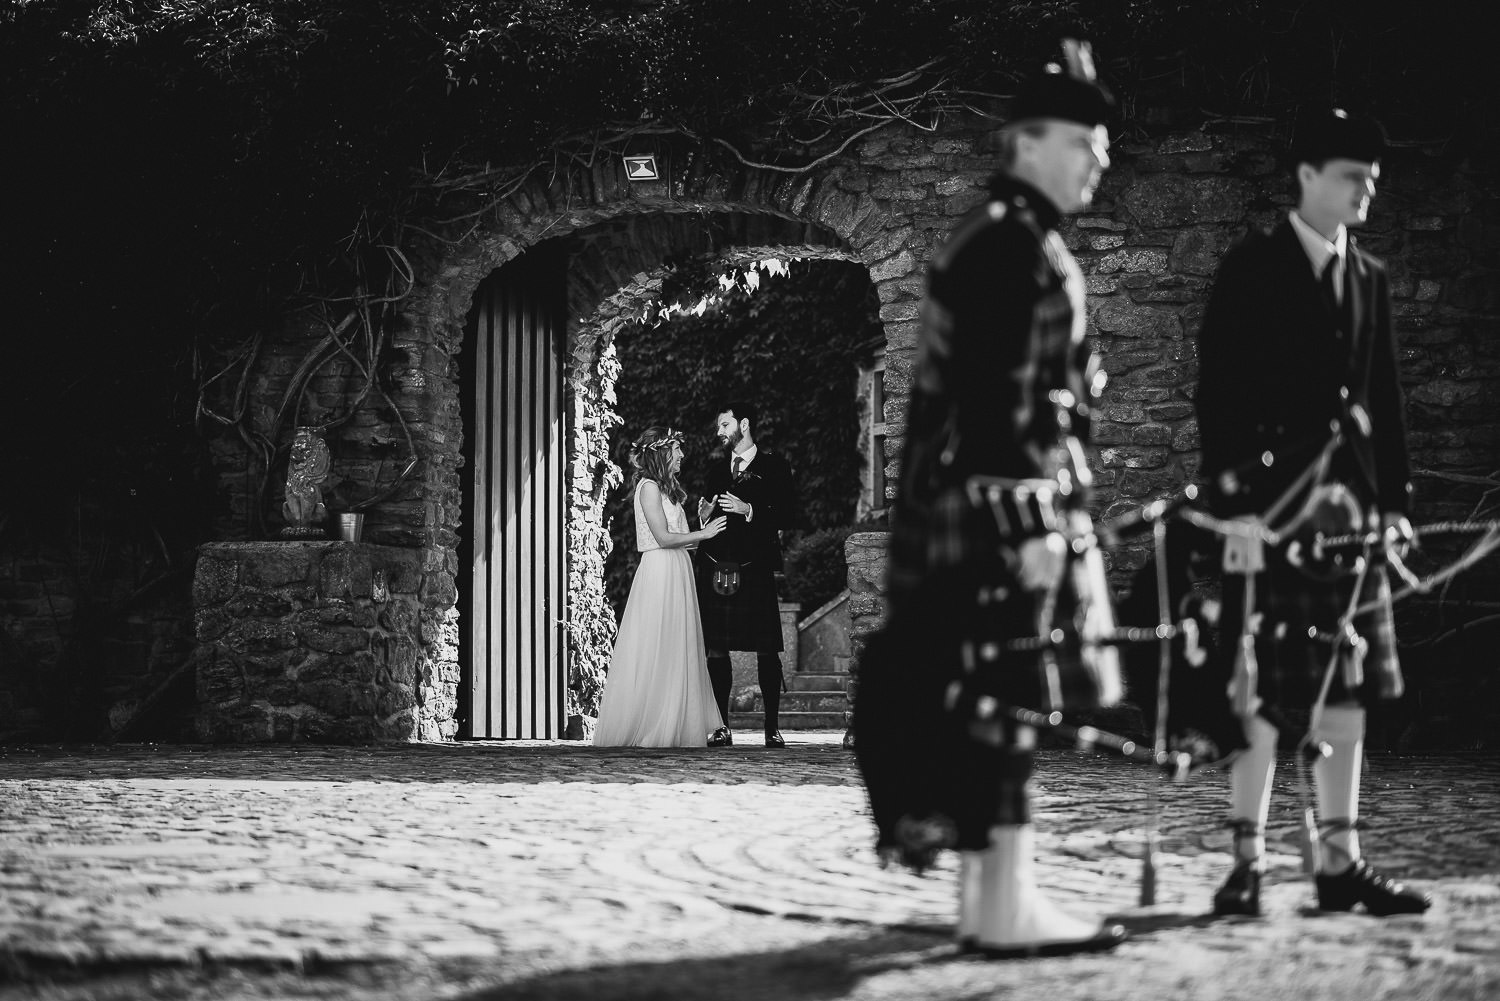 walton-castle-wedding-photographer-bristol-91.jpg